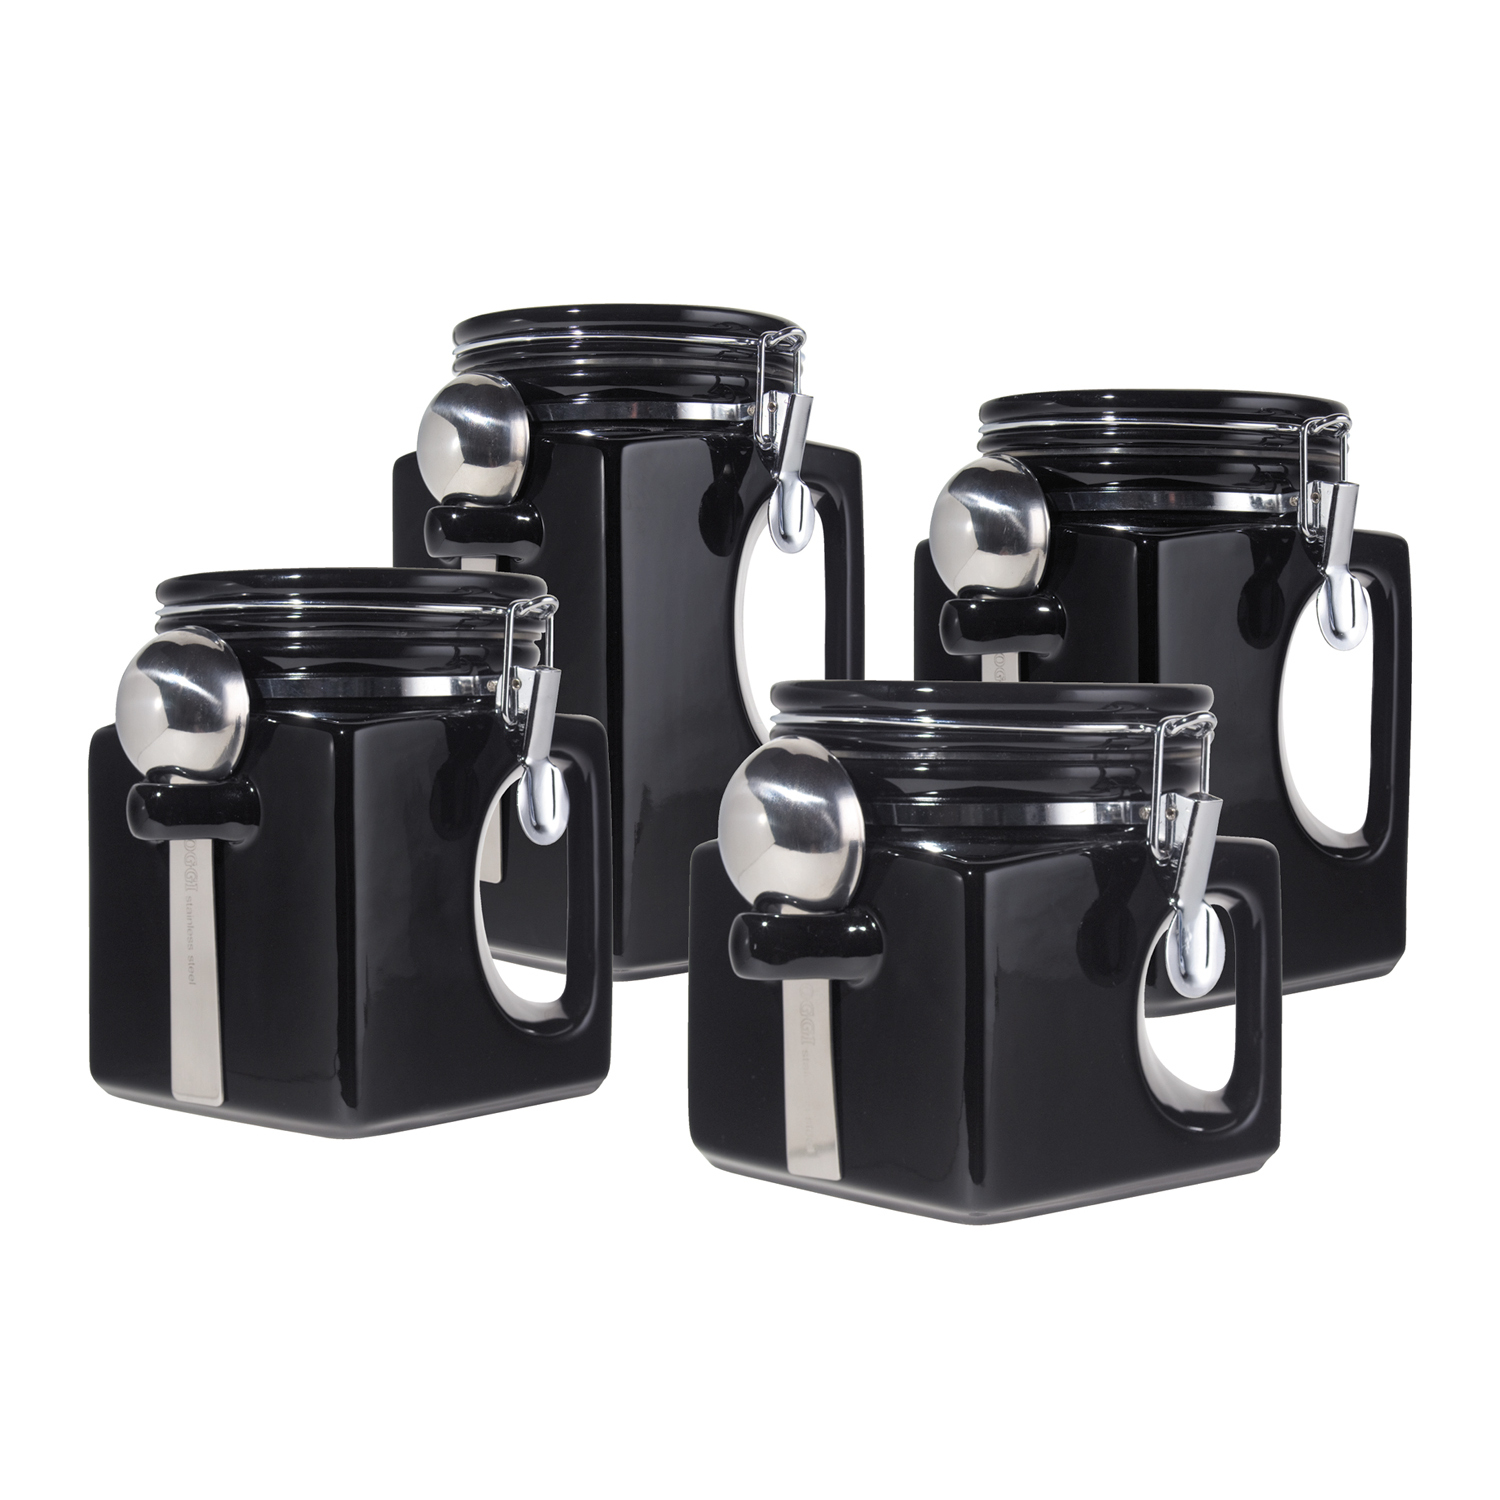 Oggi EZ Grip Black Ceramic Food Storage Canister Set